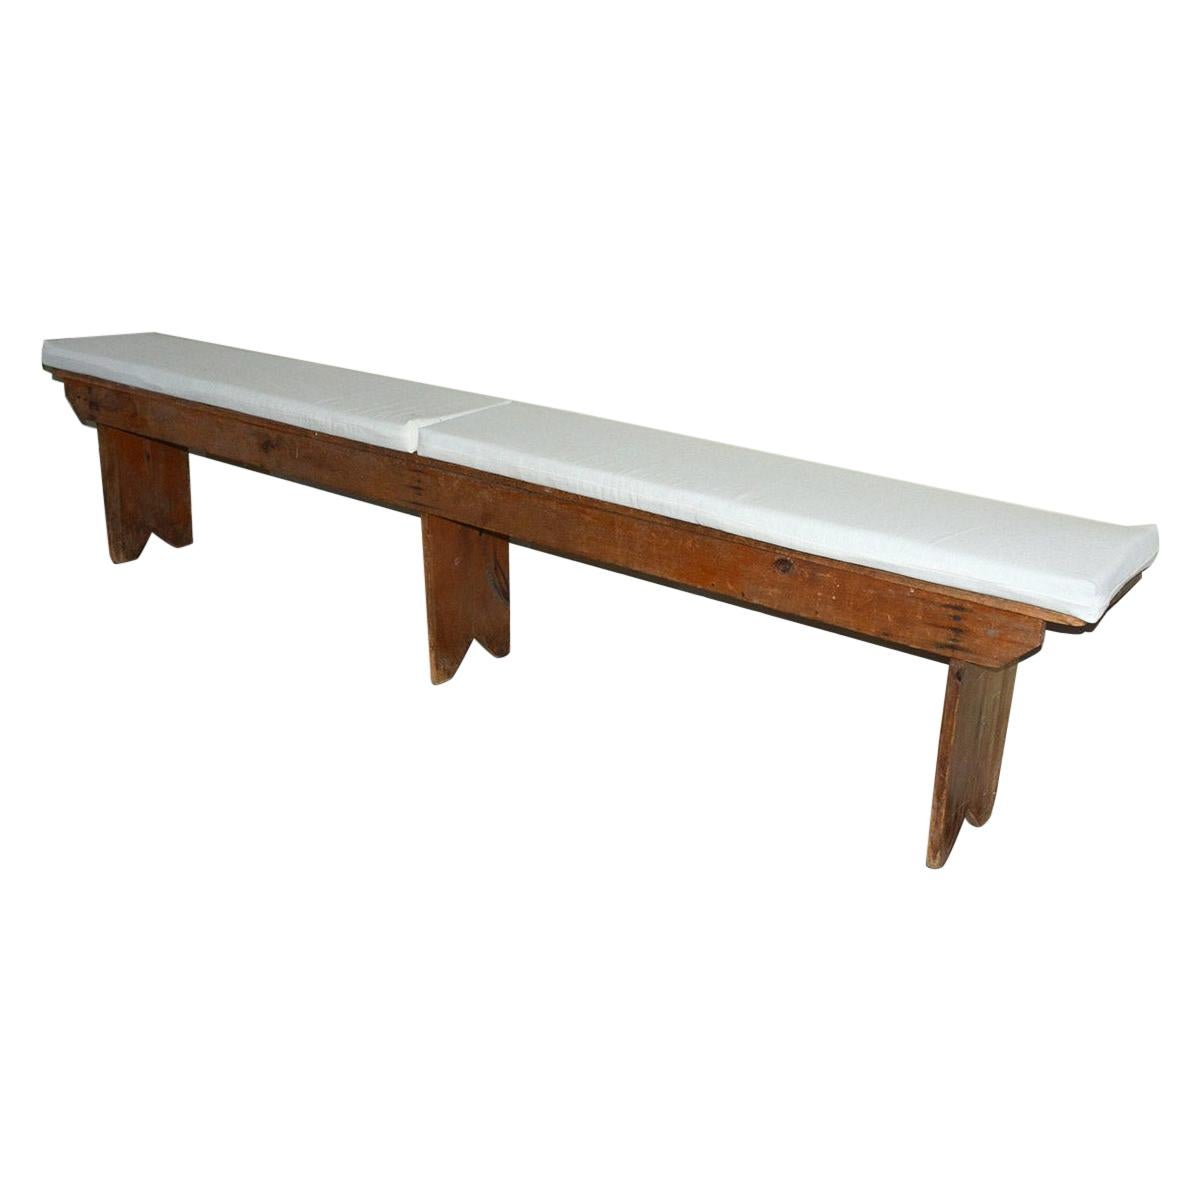 Rustic American Country Bench